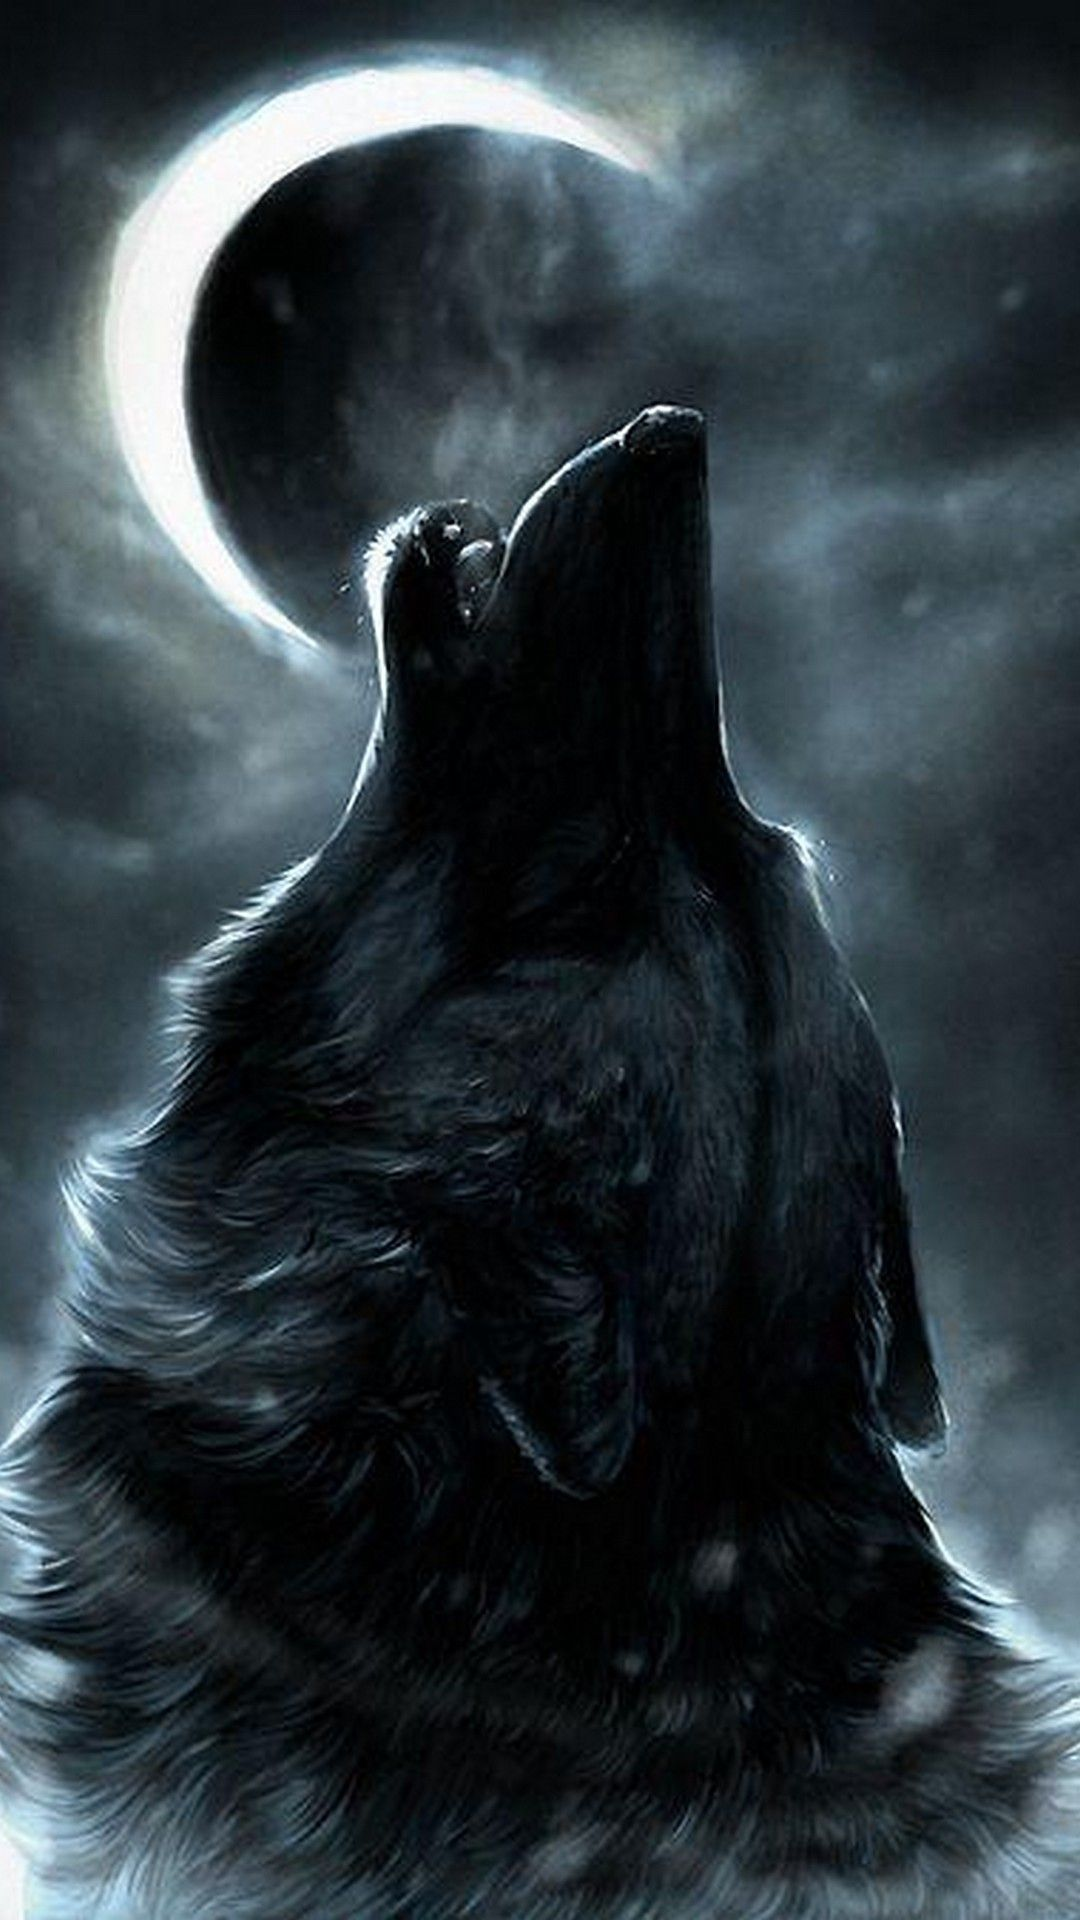 Refresh Wolf Iphone X Hd Wallpaper High Resolution Pixels 1080x1920 Download All In 2020 Wolf Wallpaper Iphone Wallpaper Epic Iphone Wallpaper